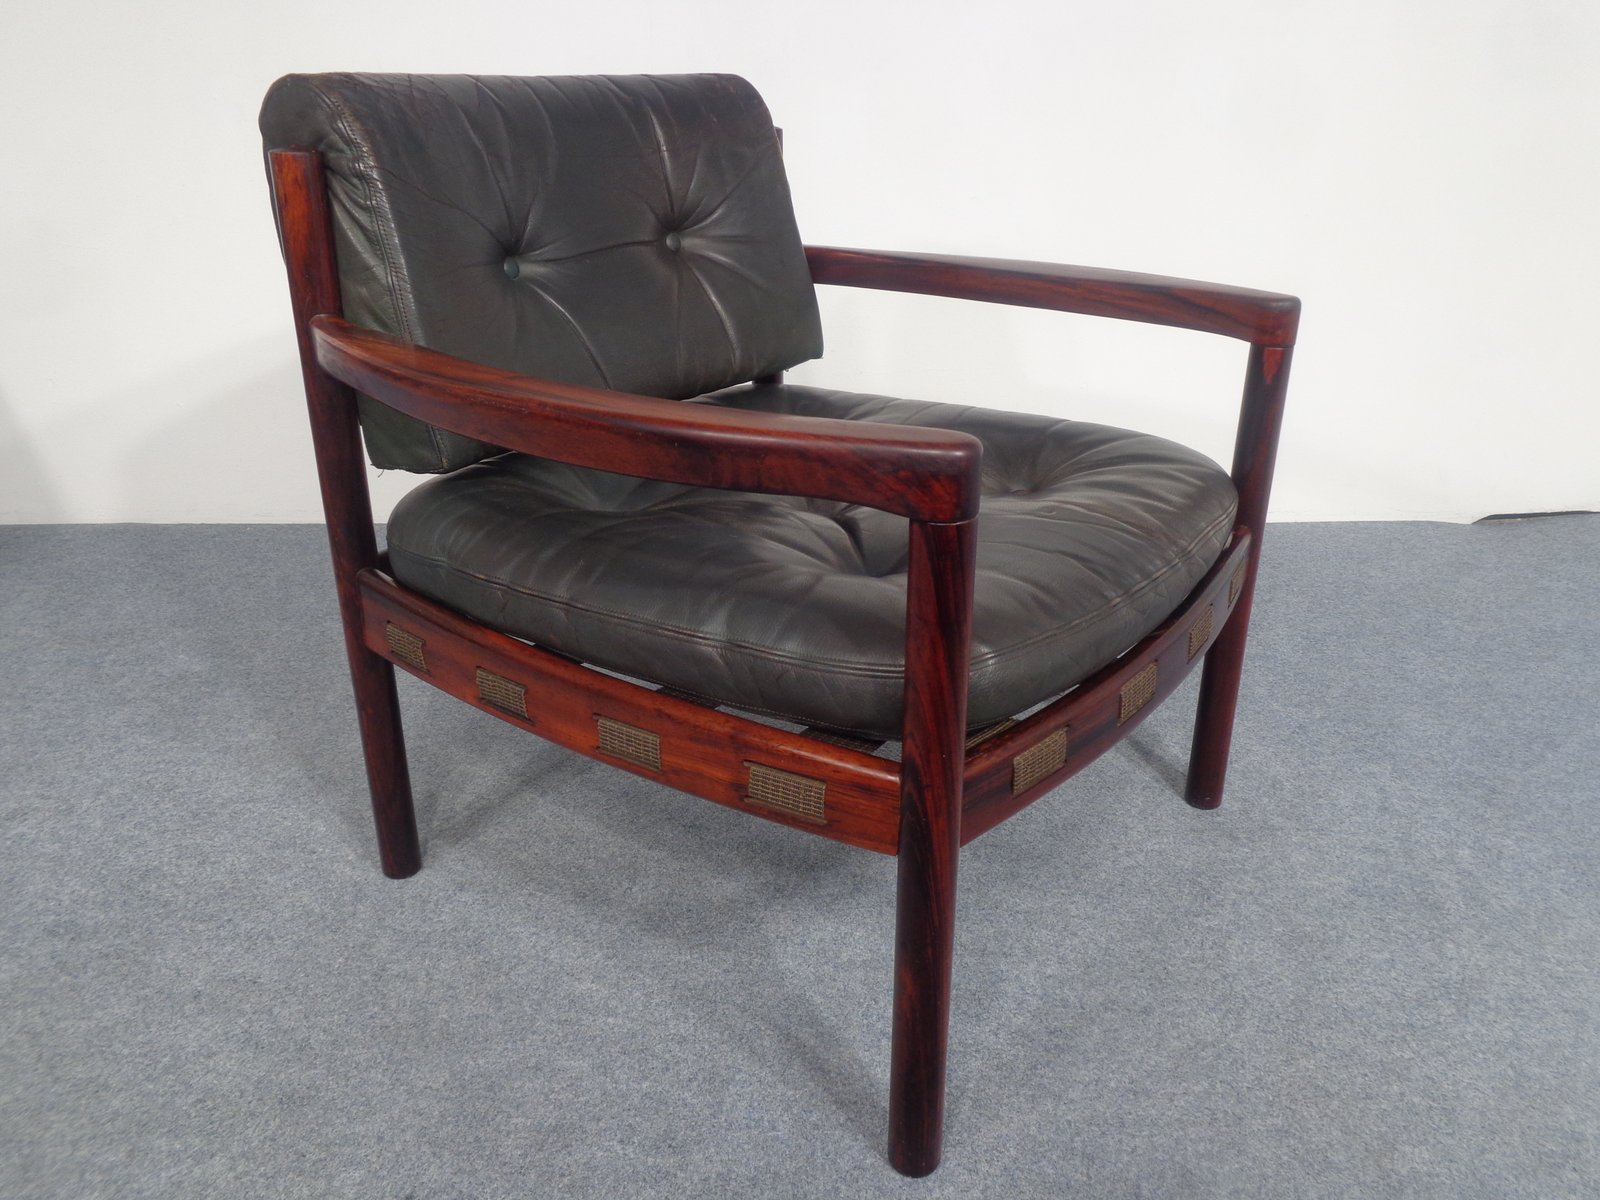 Mid Century Swedish Rosewood and Black Leather Armchair by Arne